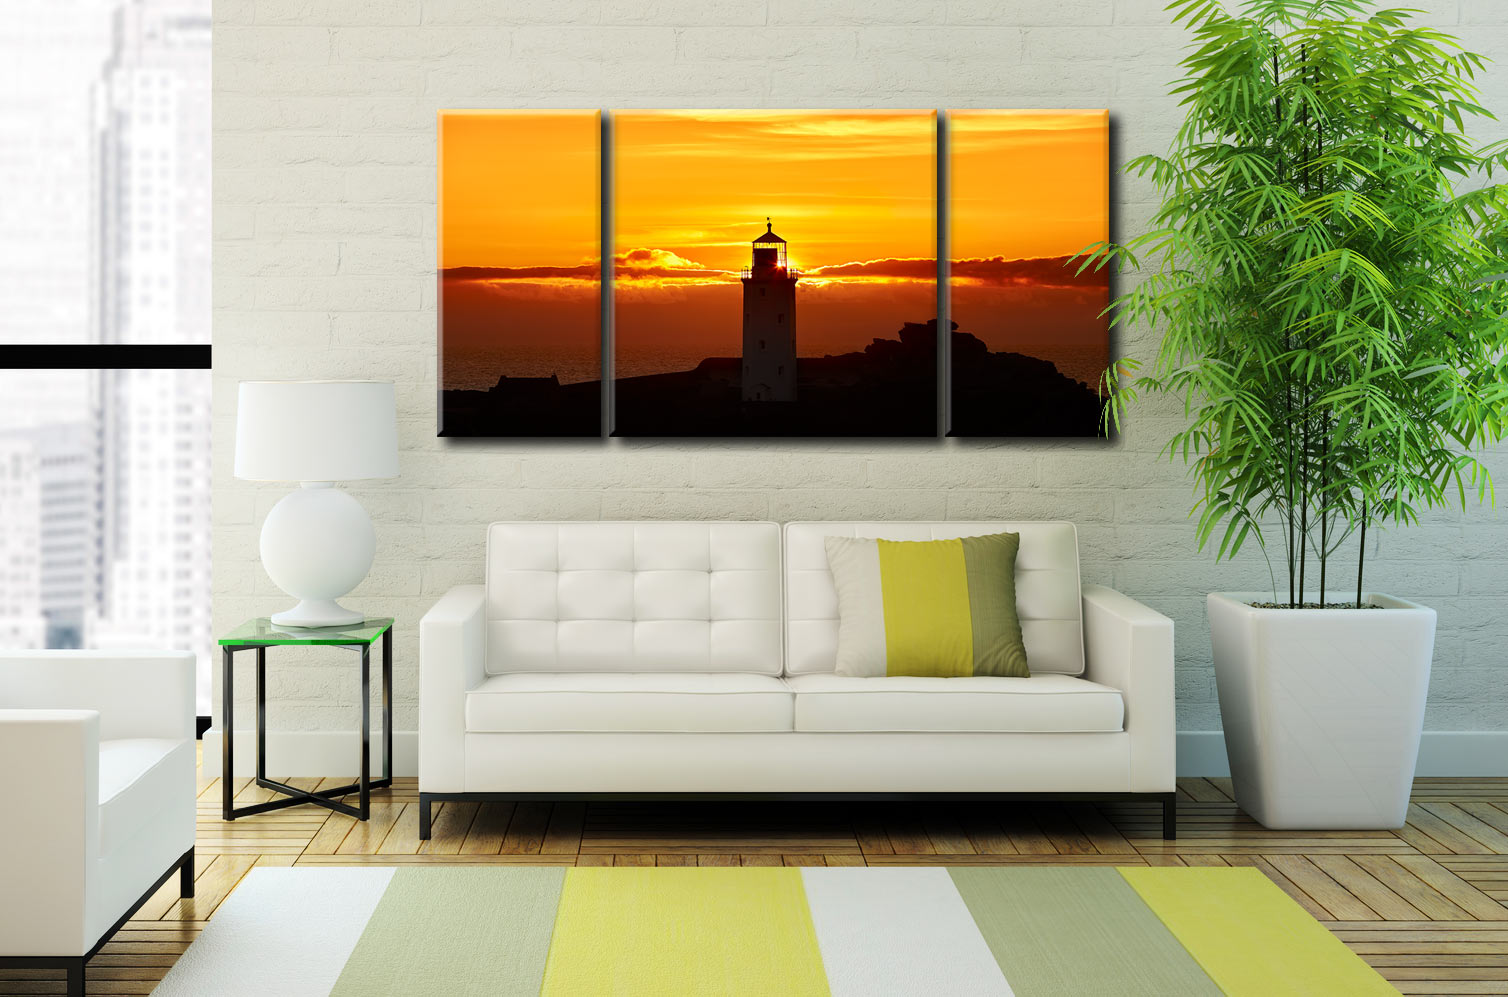 Sunbeams of Godrevy Lighthouse - 3 Panel Wide Centre Canvas on Wall